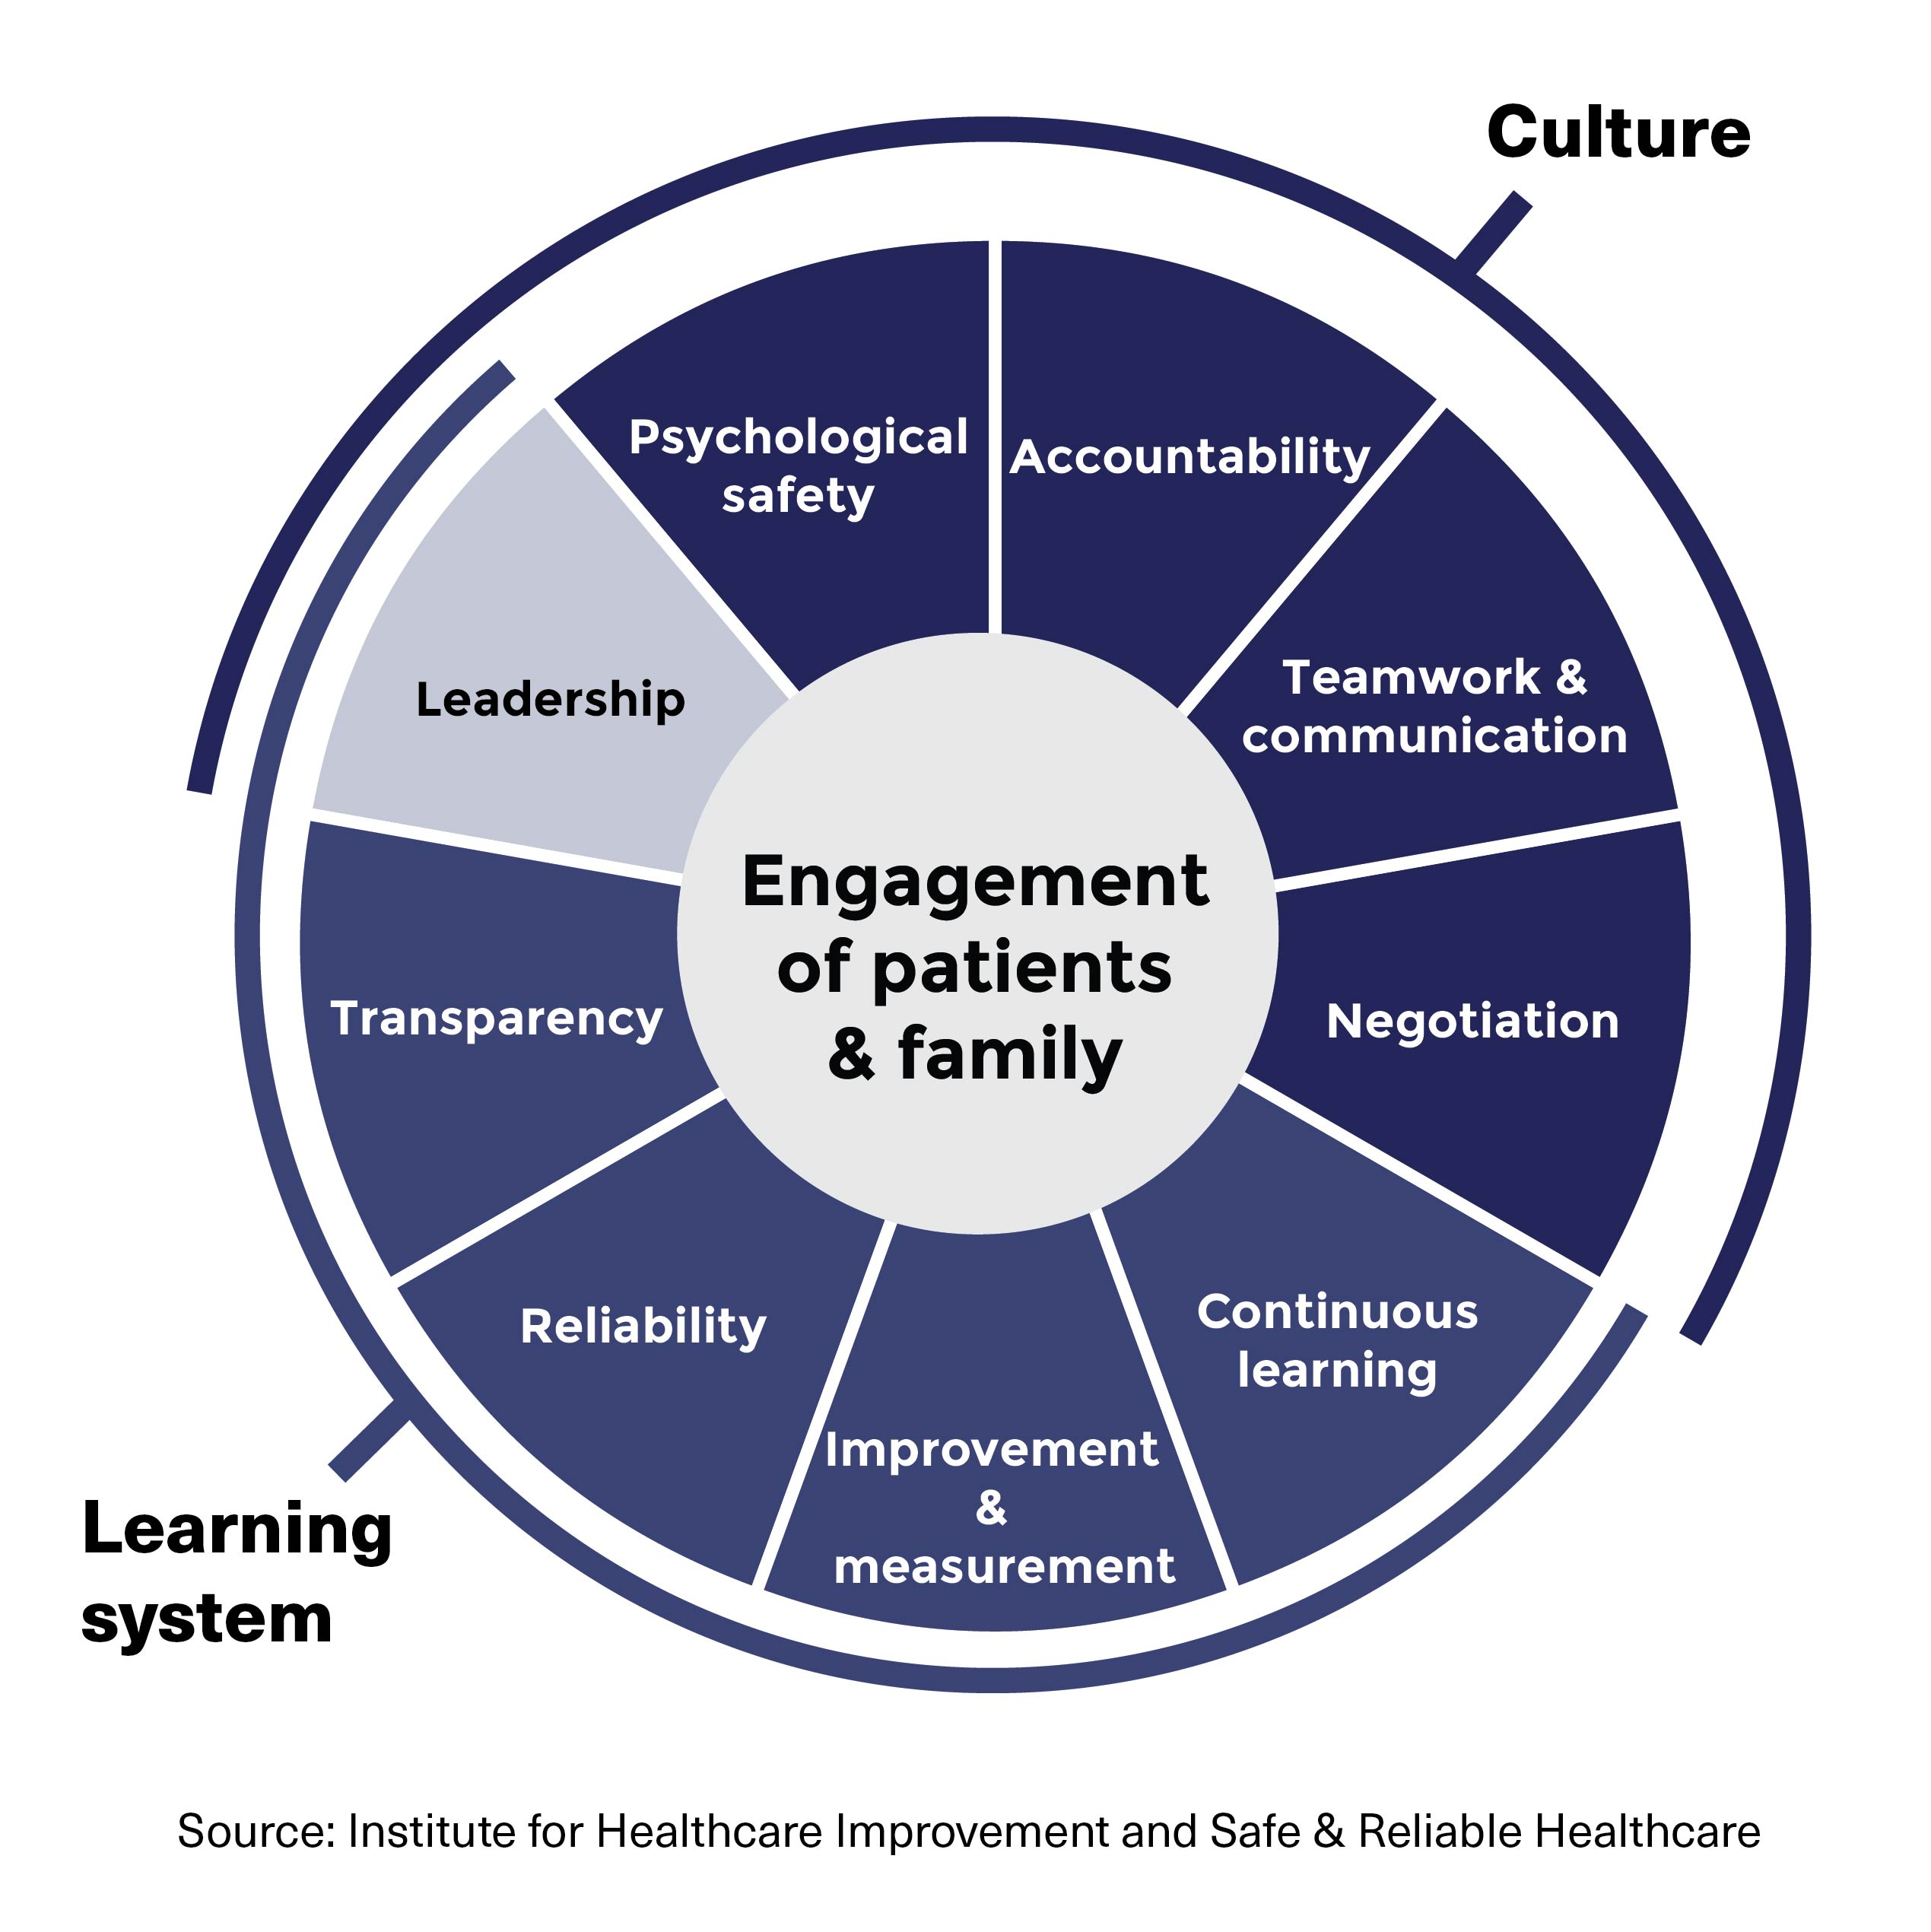 Engagement of patients & family. Culture: leadership, psychological safety, accountability, teamwork & communication, negotiation. Learning system: leadership, transparency, reliability, improvement & measurement, continuous learning.